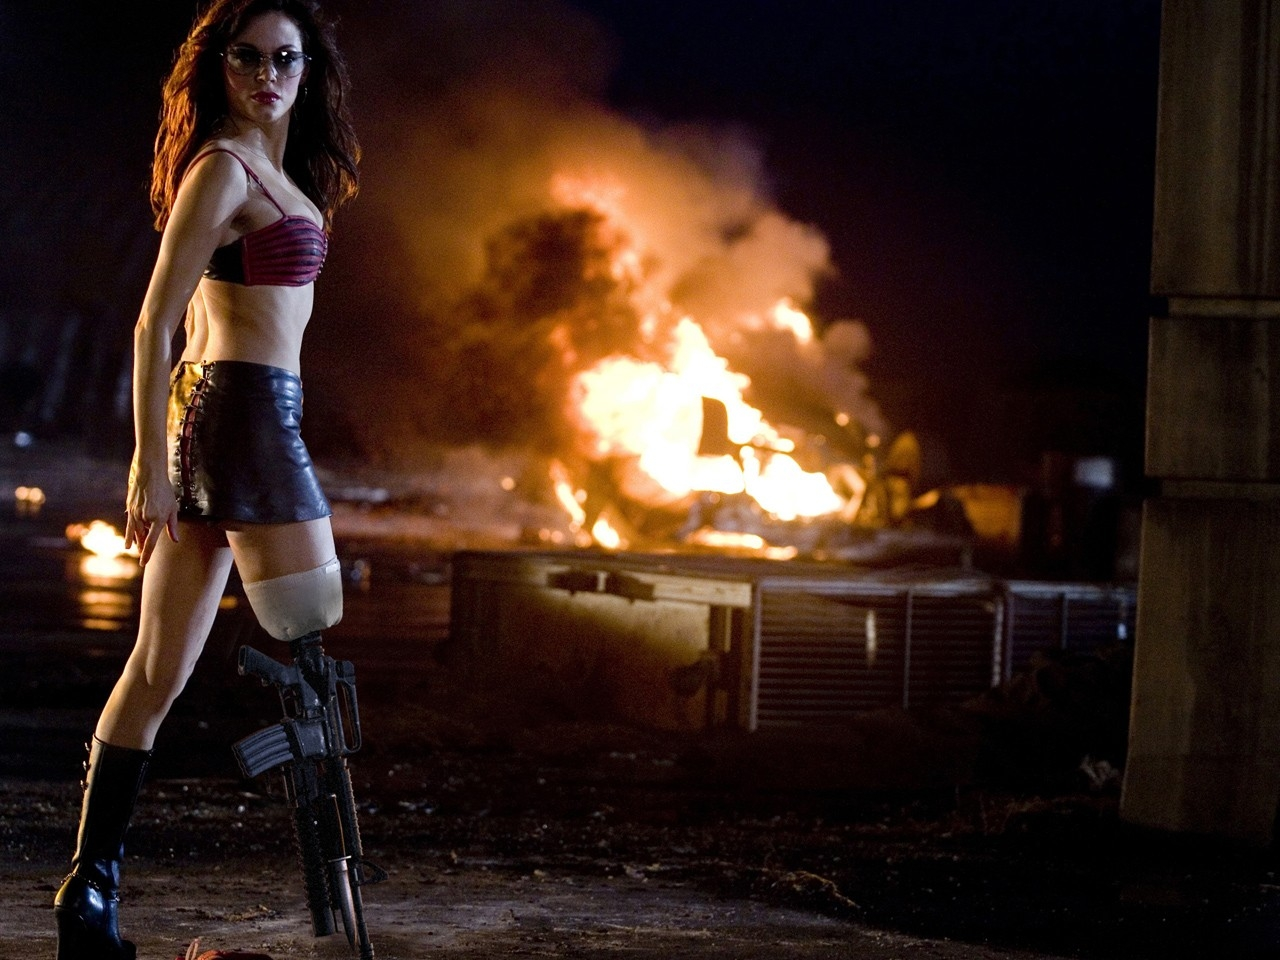 La grintosa Rose McGowan in un wallpaper del film Grindhouse